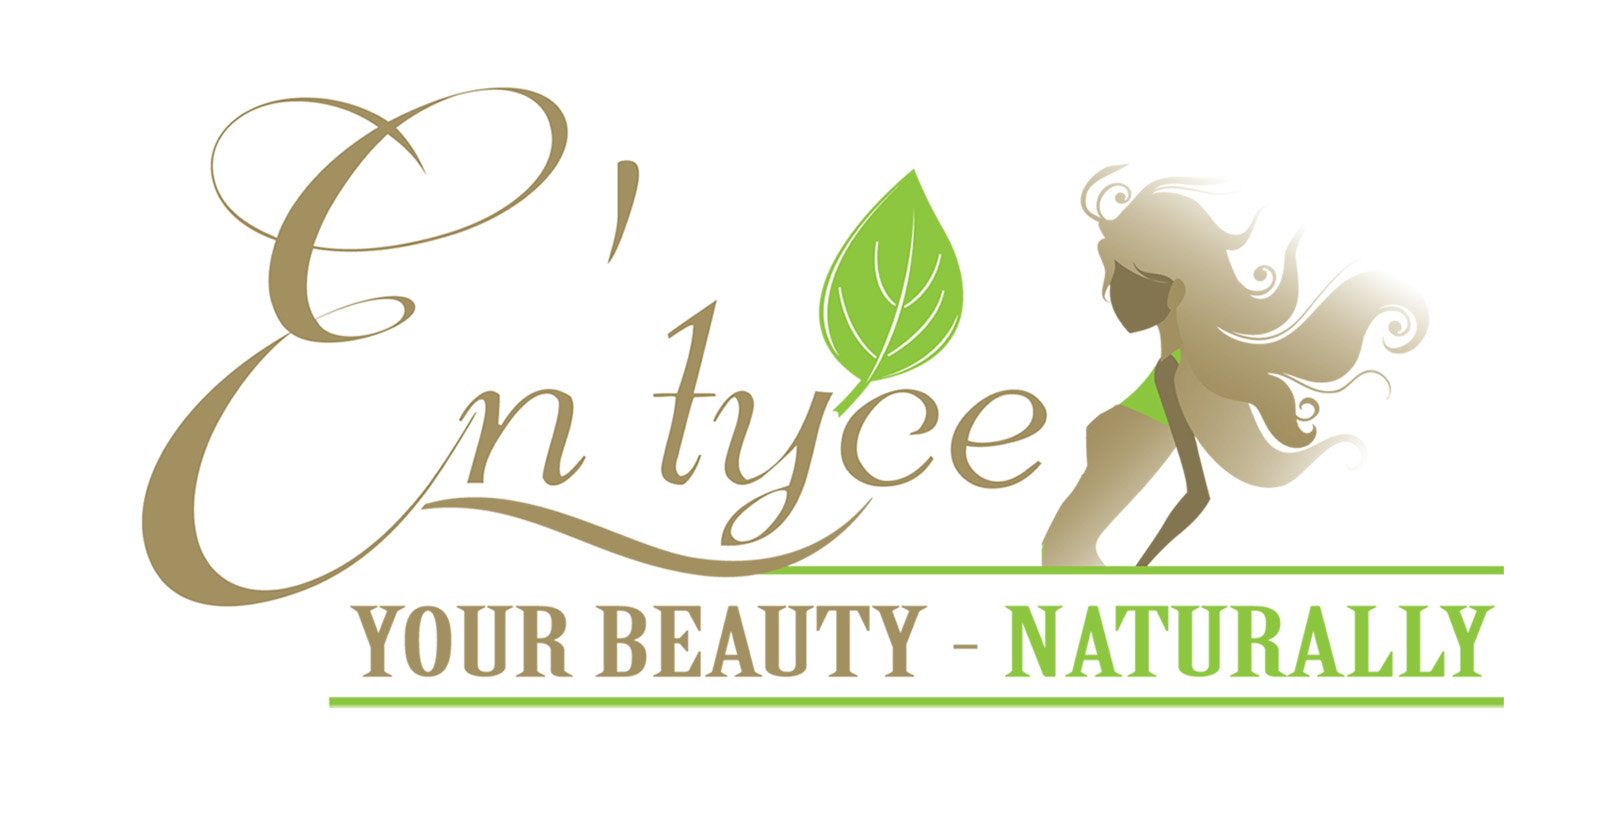 En'tyce Your Beauty - Naturally Logo